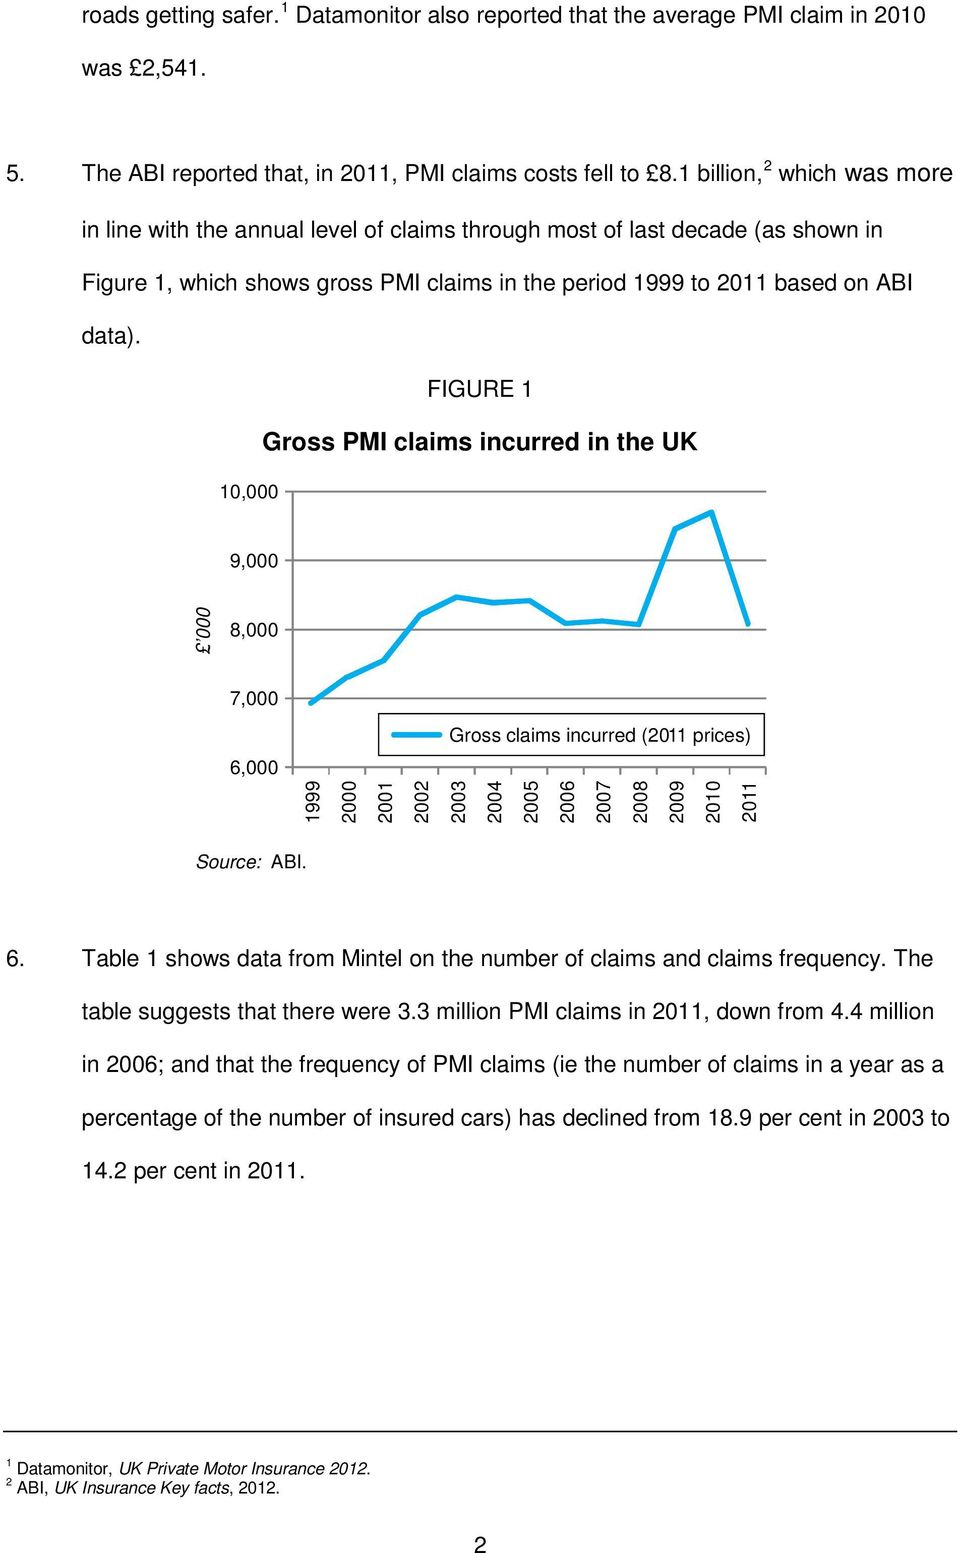 FIGURE 1 Gross PMI claims incurred in the UK 10,000 2 which was more 9,000 000 8,000 7,000 Gross claims incurred (2011 prices) 6,000 1999 2000 2001 2002 2003 2004 2005 2006 2007 2008 2009 2010 2011